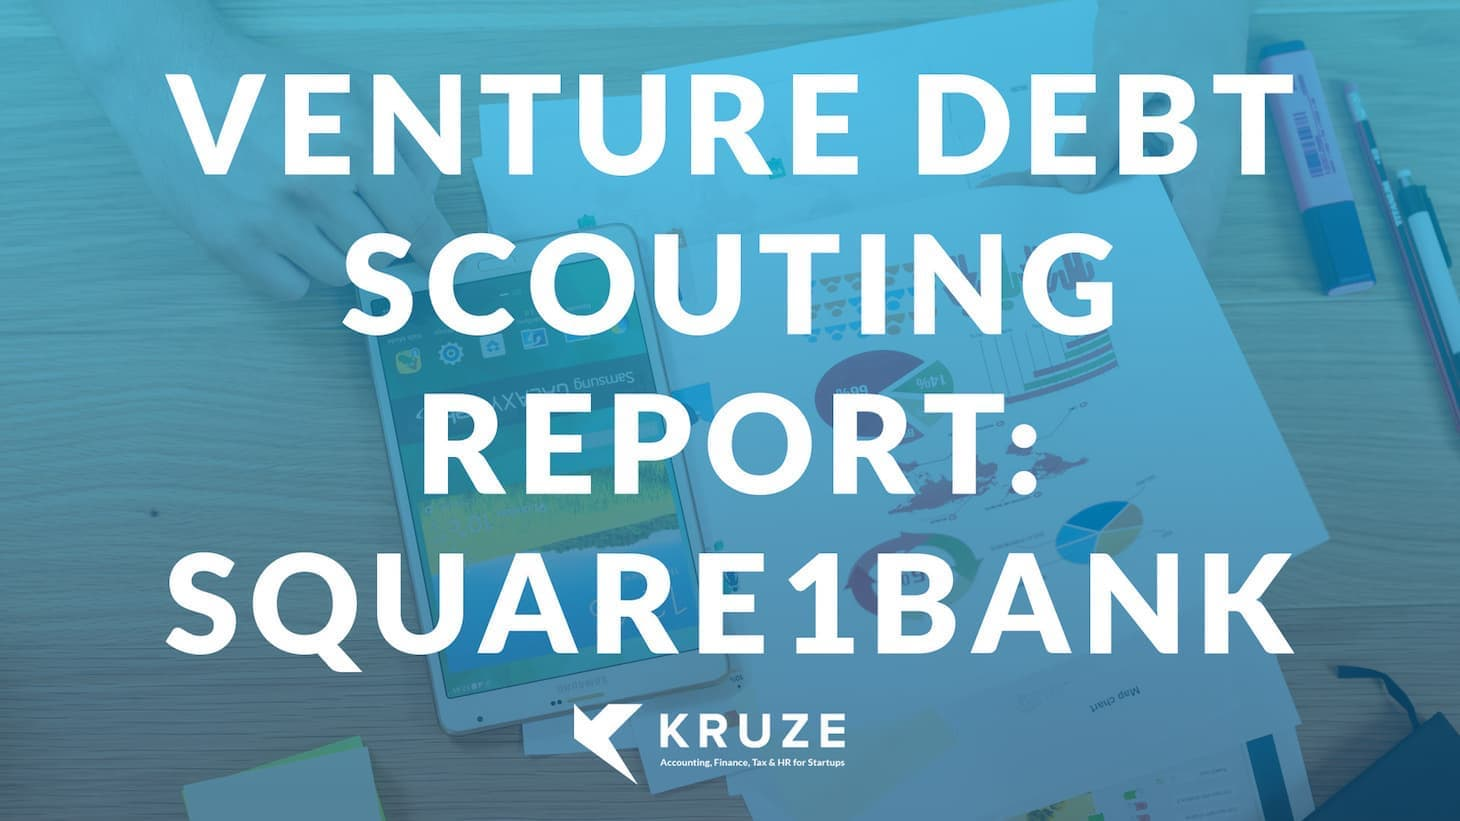 Venture Debt Scouting Report: Square One Bank